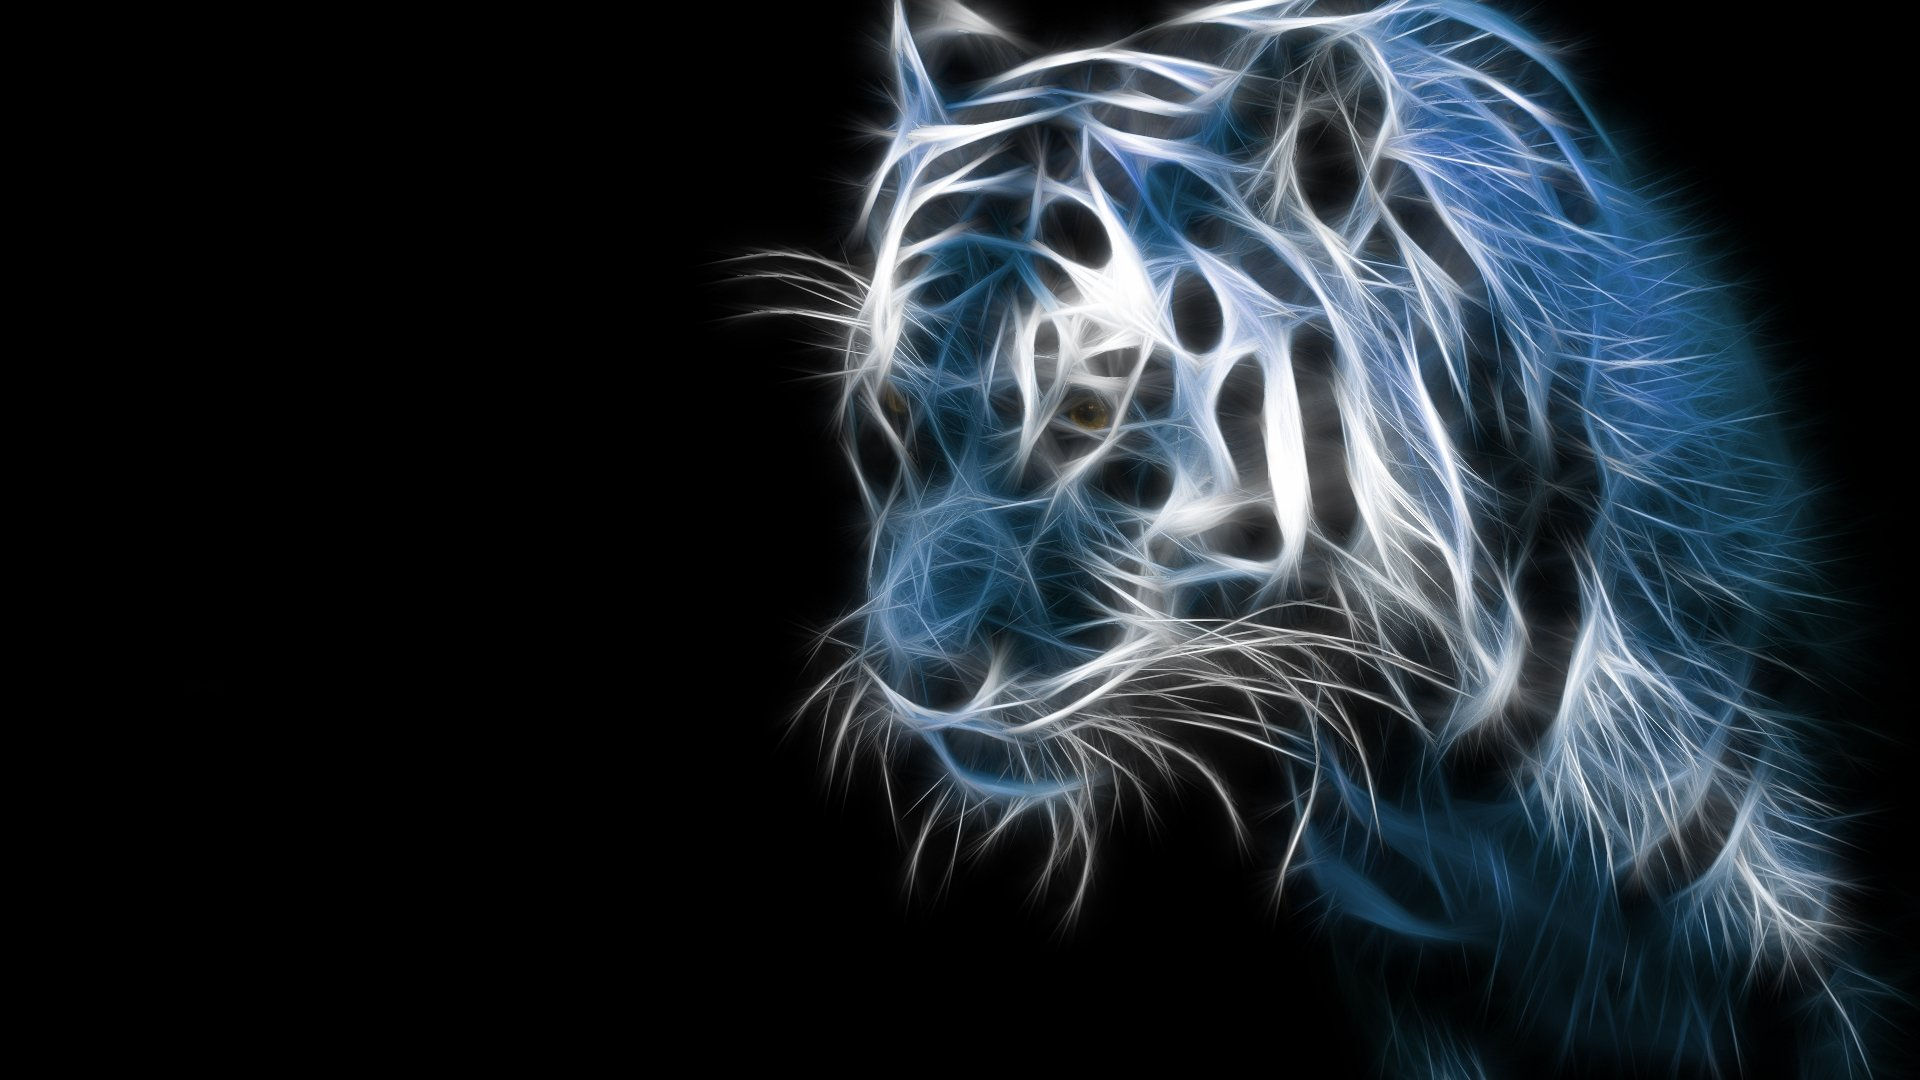 Awesome Tiger free wallpaper ID:116270 for hd 1920x1080 desktop